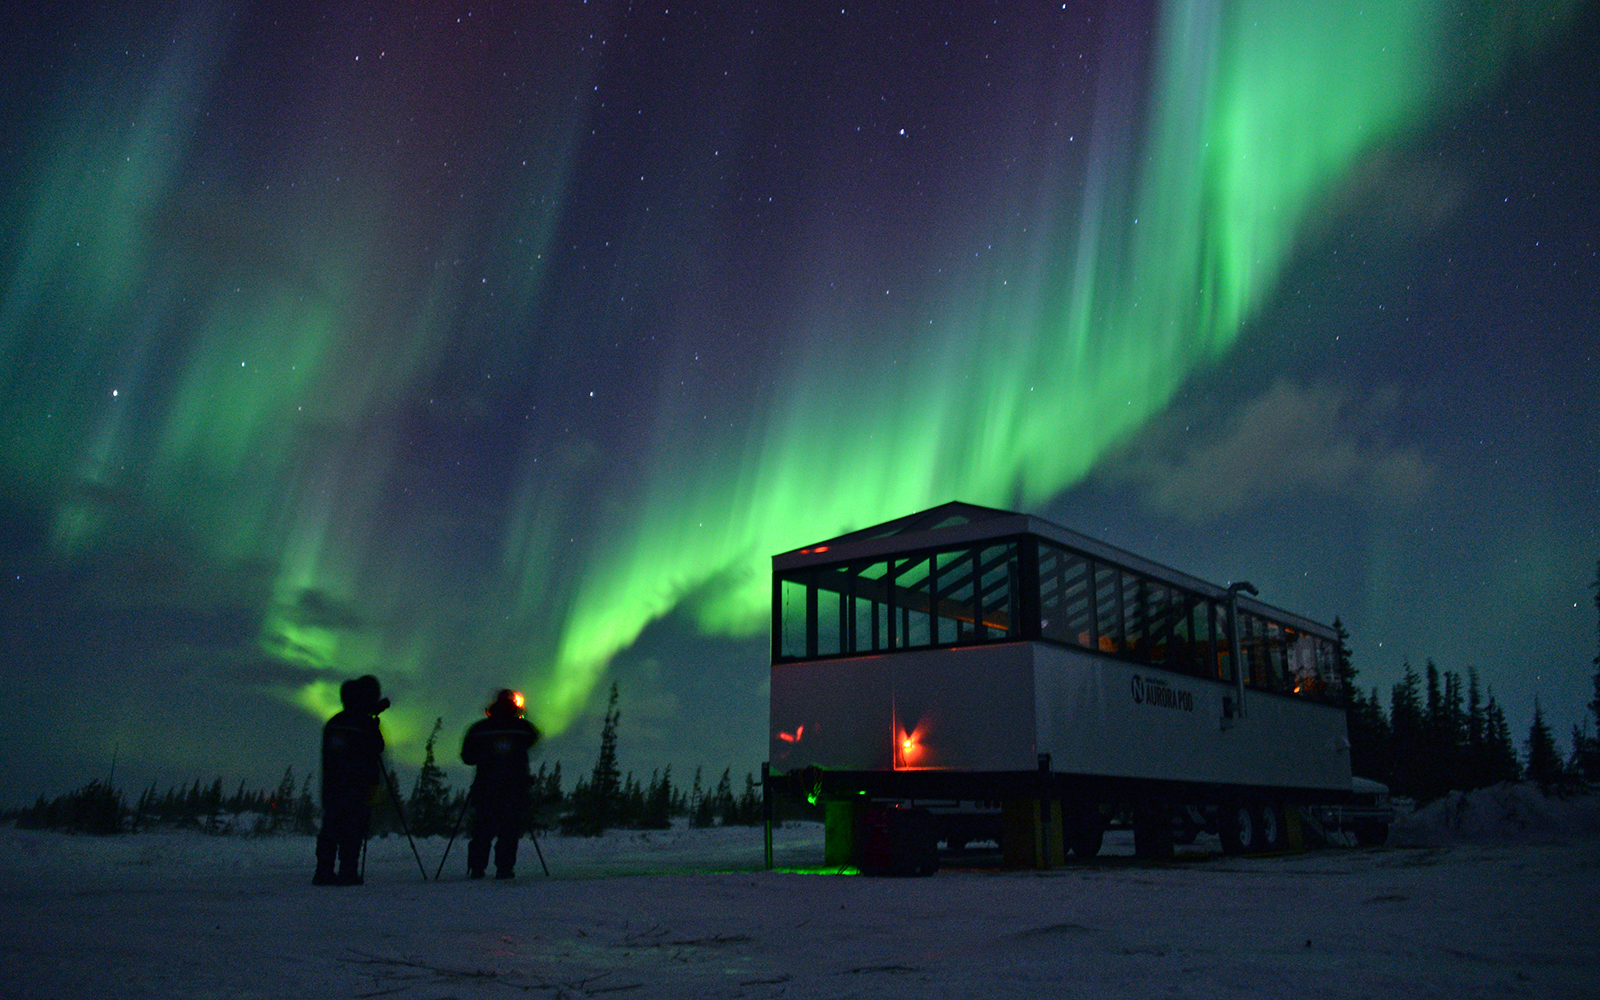 Manitoba's Aurora Pod Offer Amazing Views of the Aurora Borealis